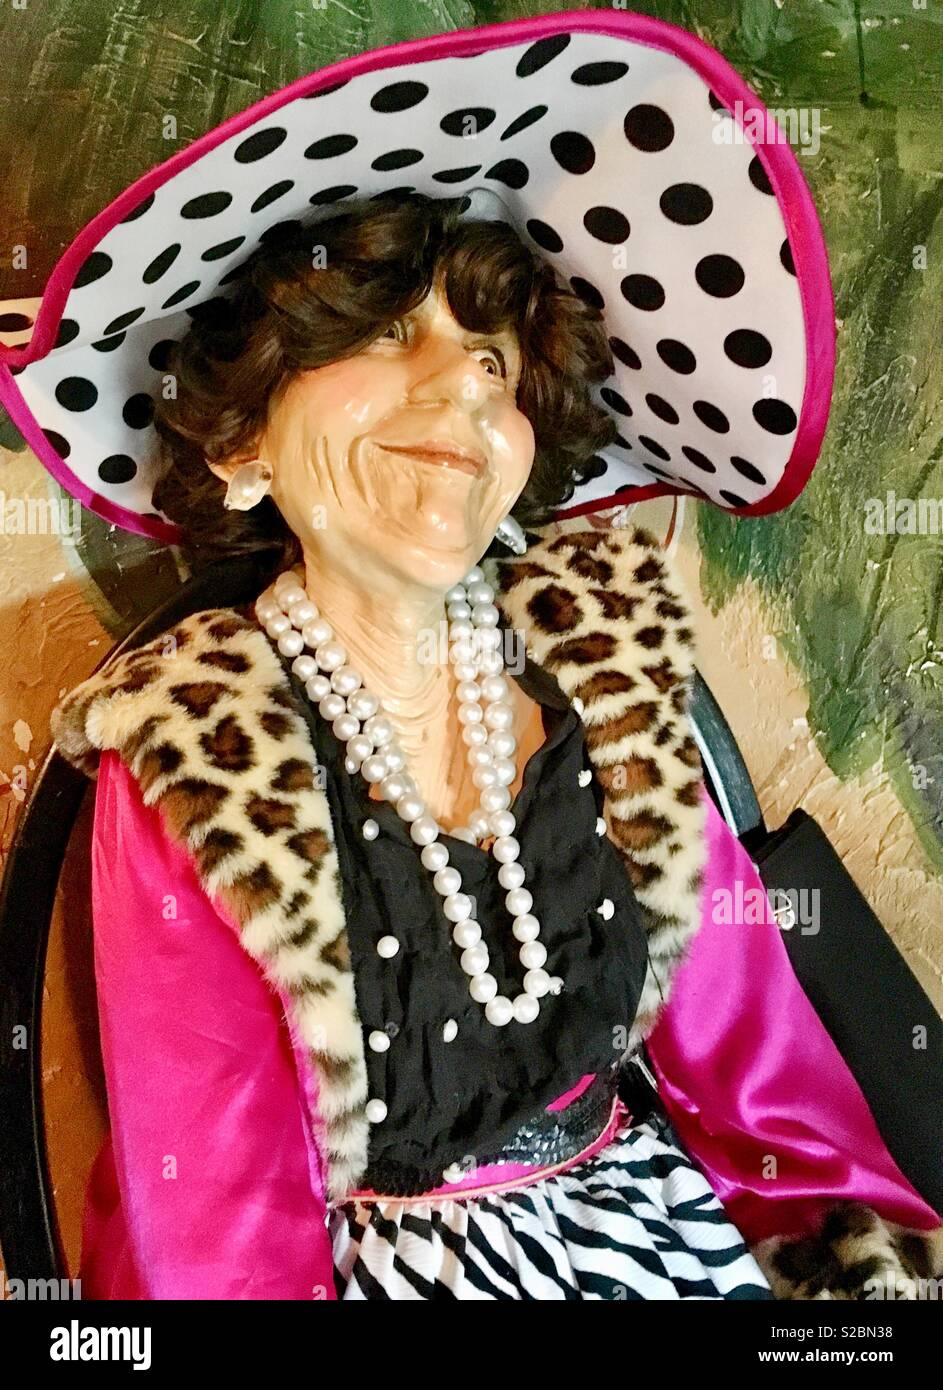 Mannequin of elderly woman sitting in black chair with black purse wearing black white and pink polka dotted hat, pink coat with faux leopard fur trim, pearl strands, black blouse  zebra print skirt - Stock Image